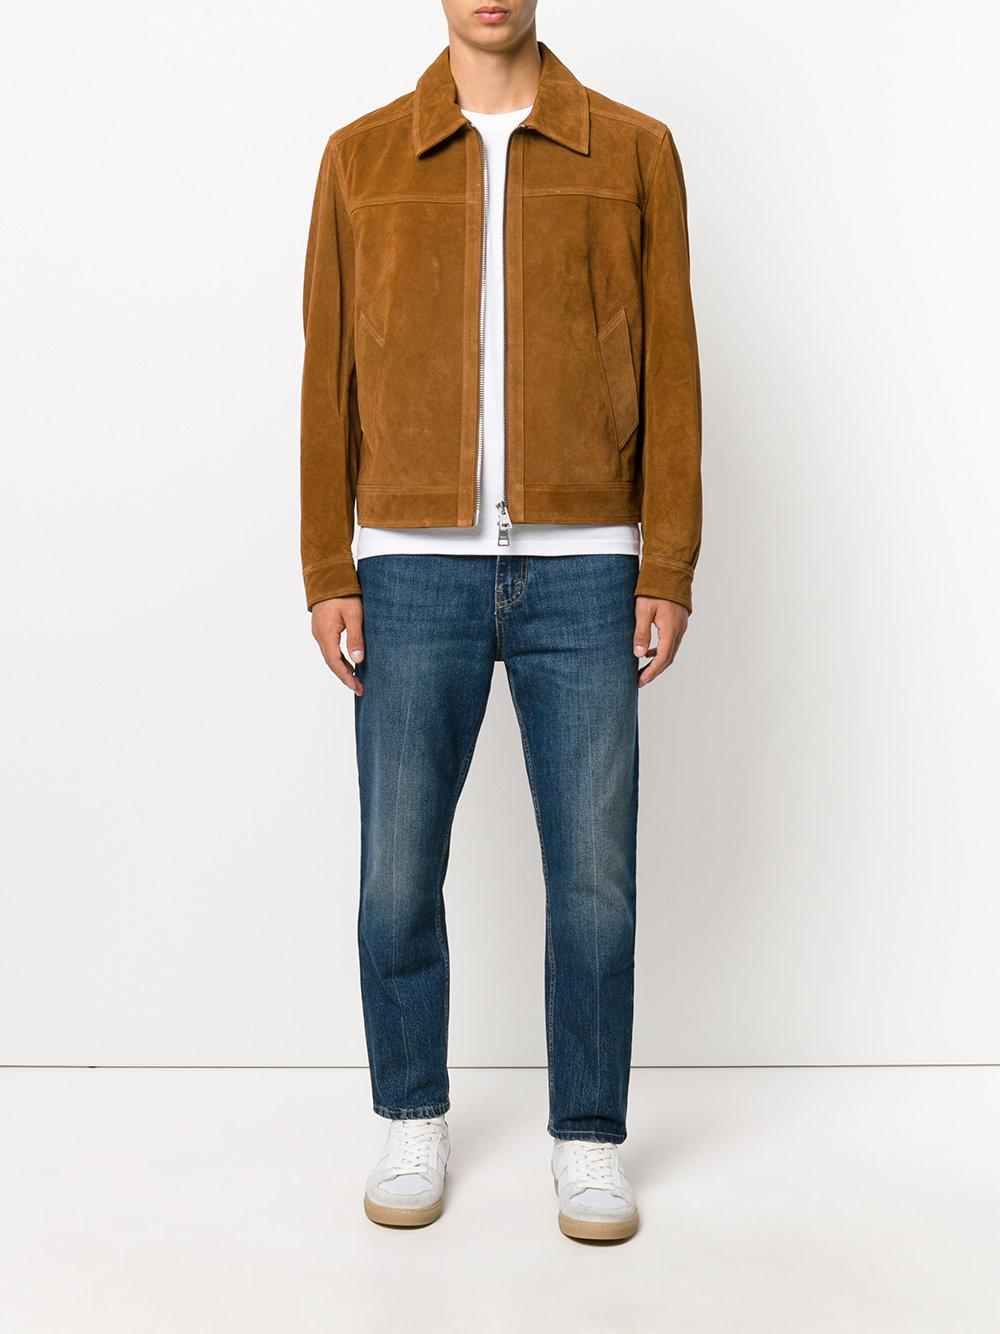 AMI Classic Collar Leather Jacket for Men